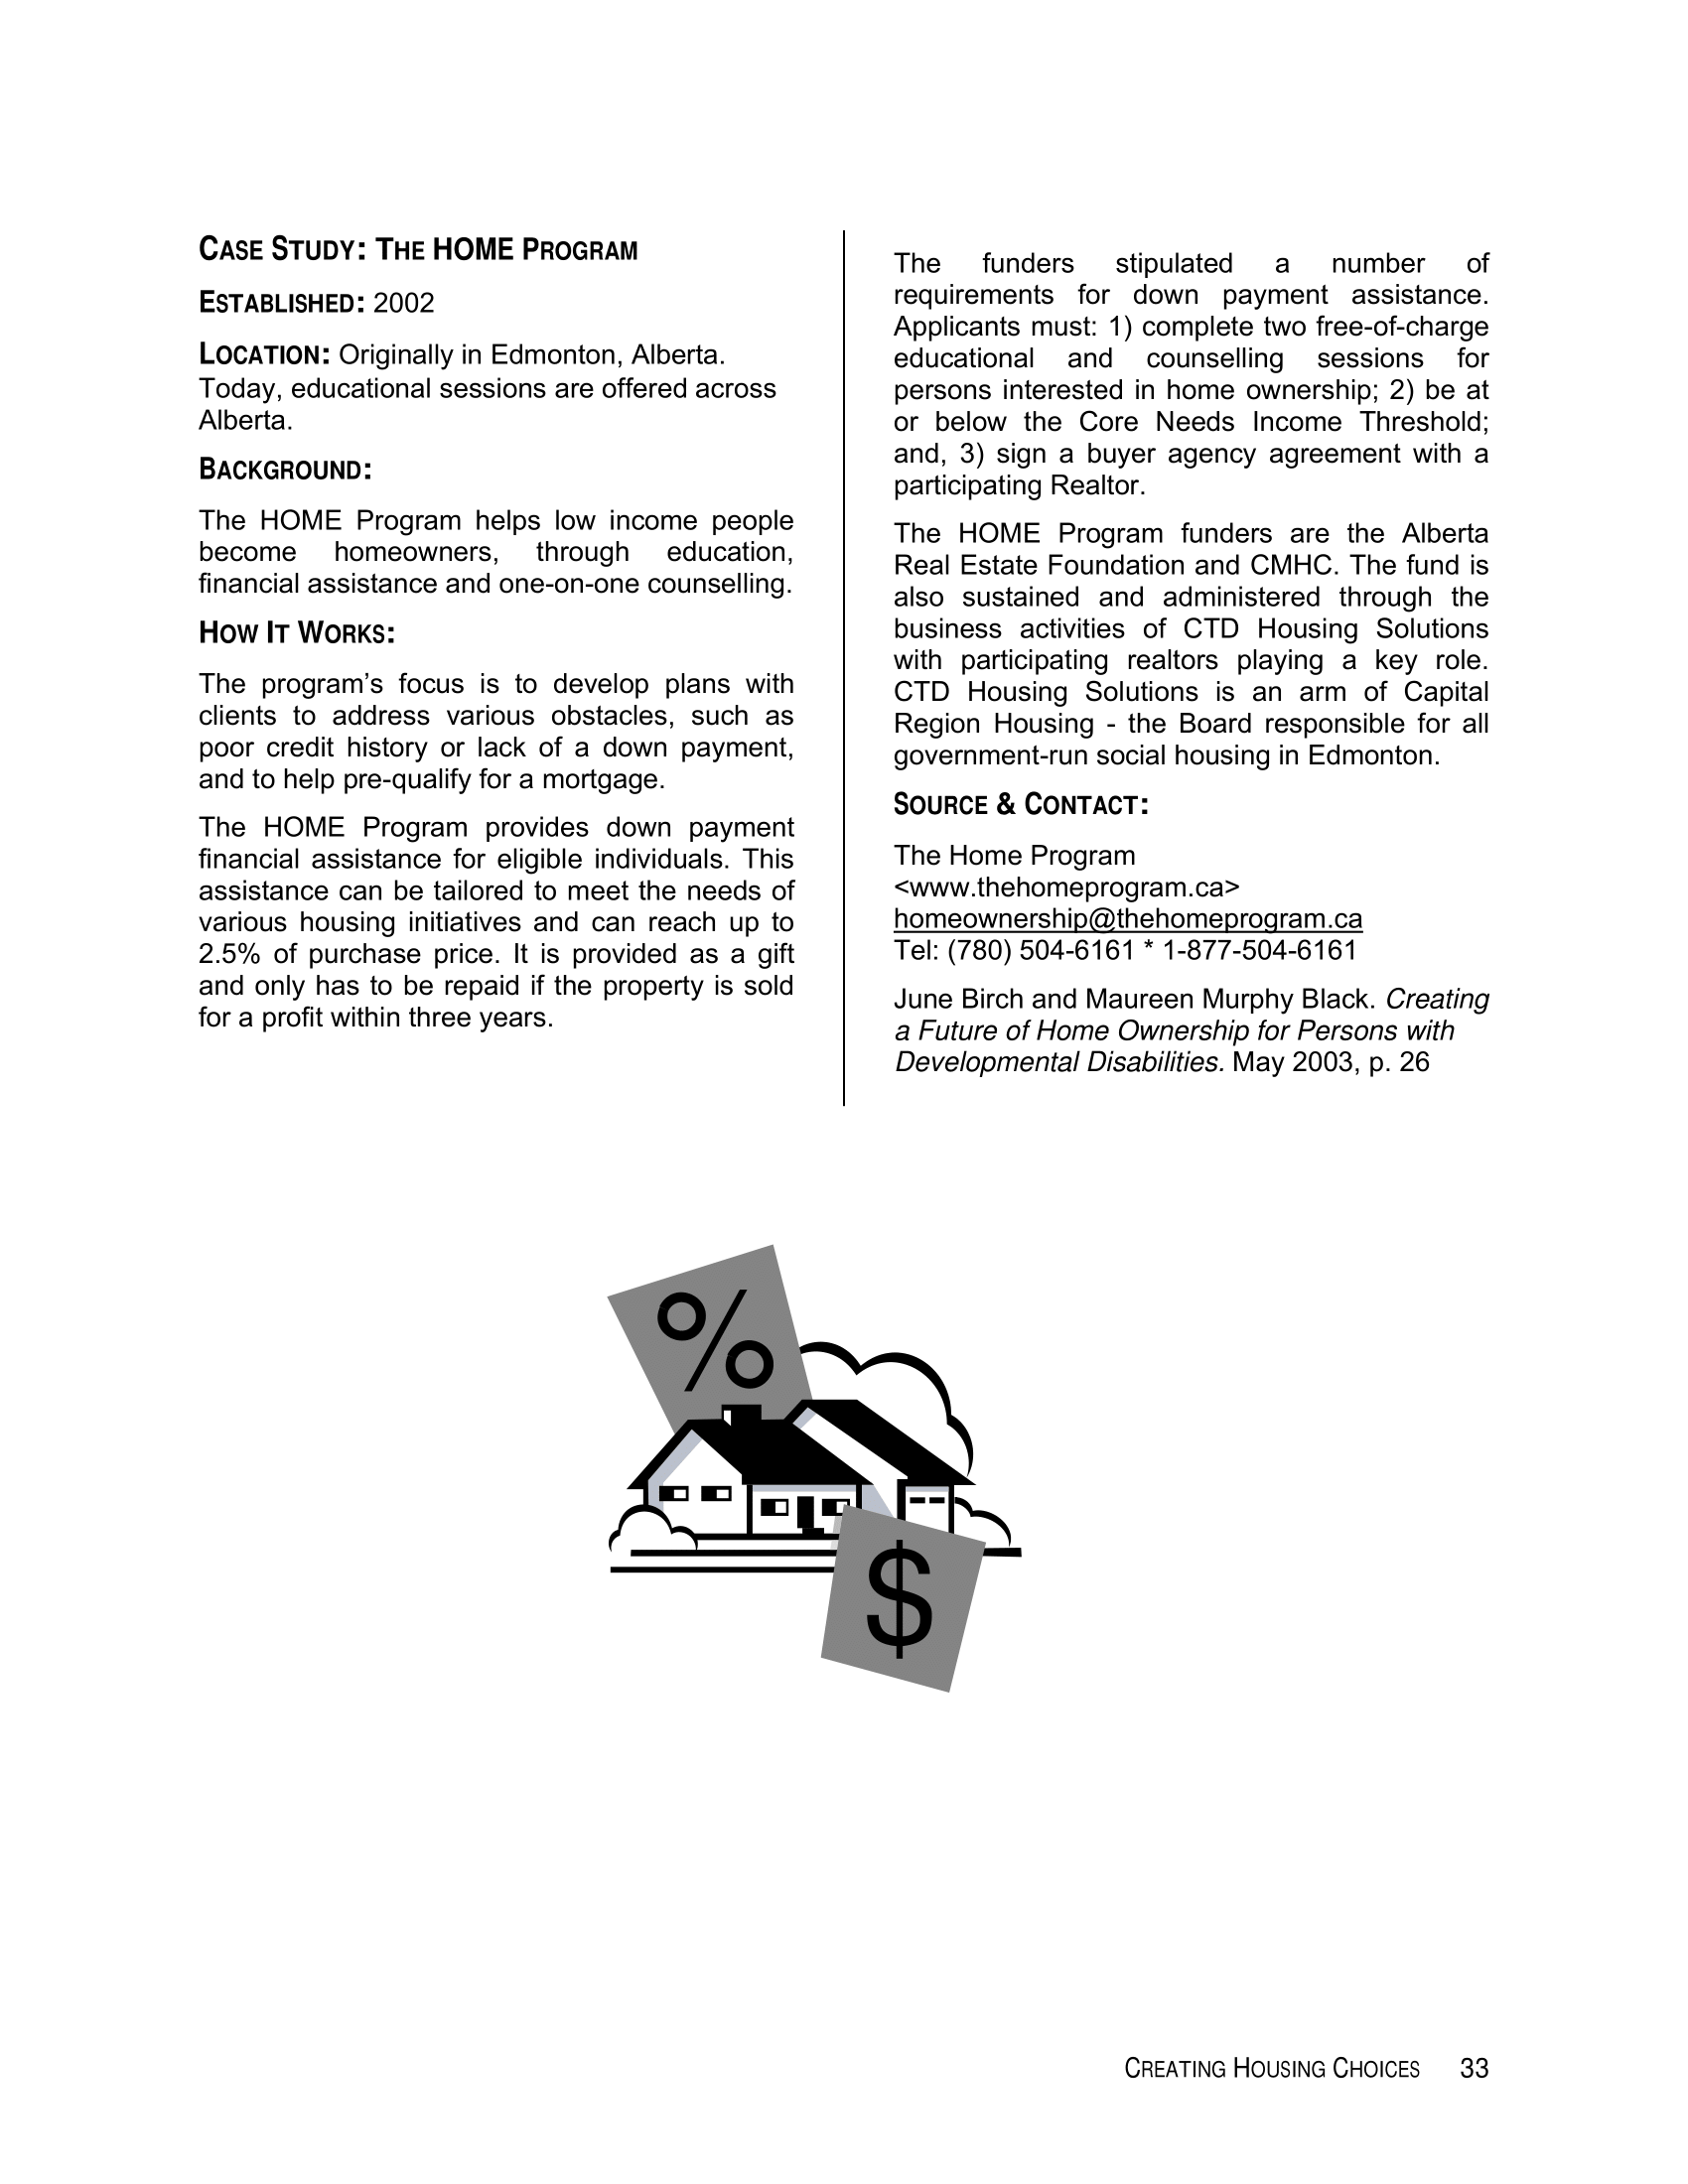 Creating Housing Choices - 2006-34.png